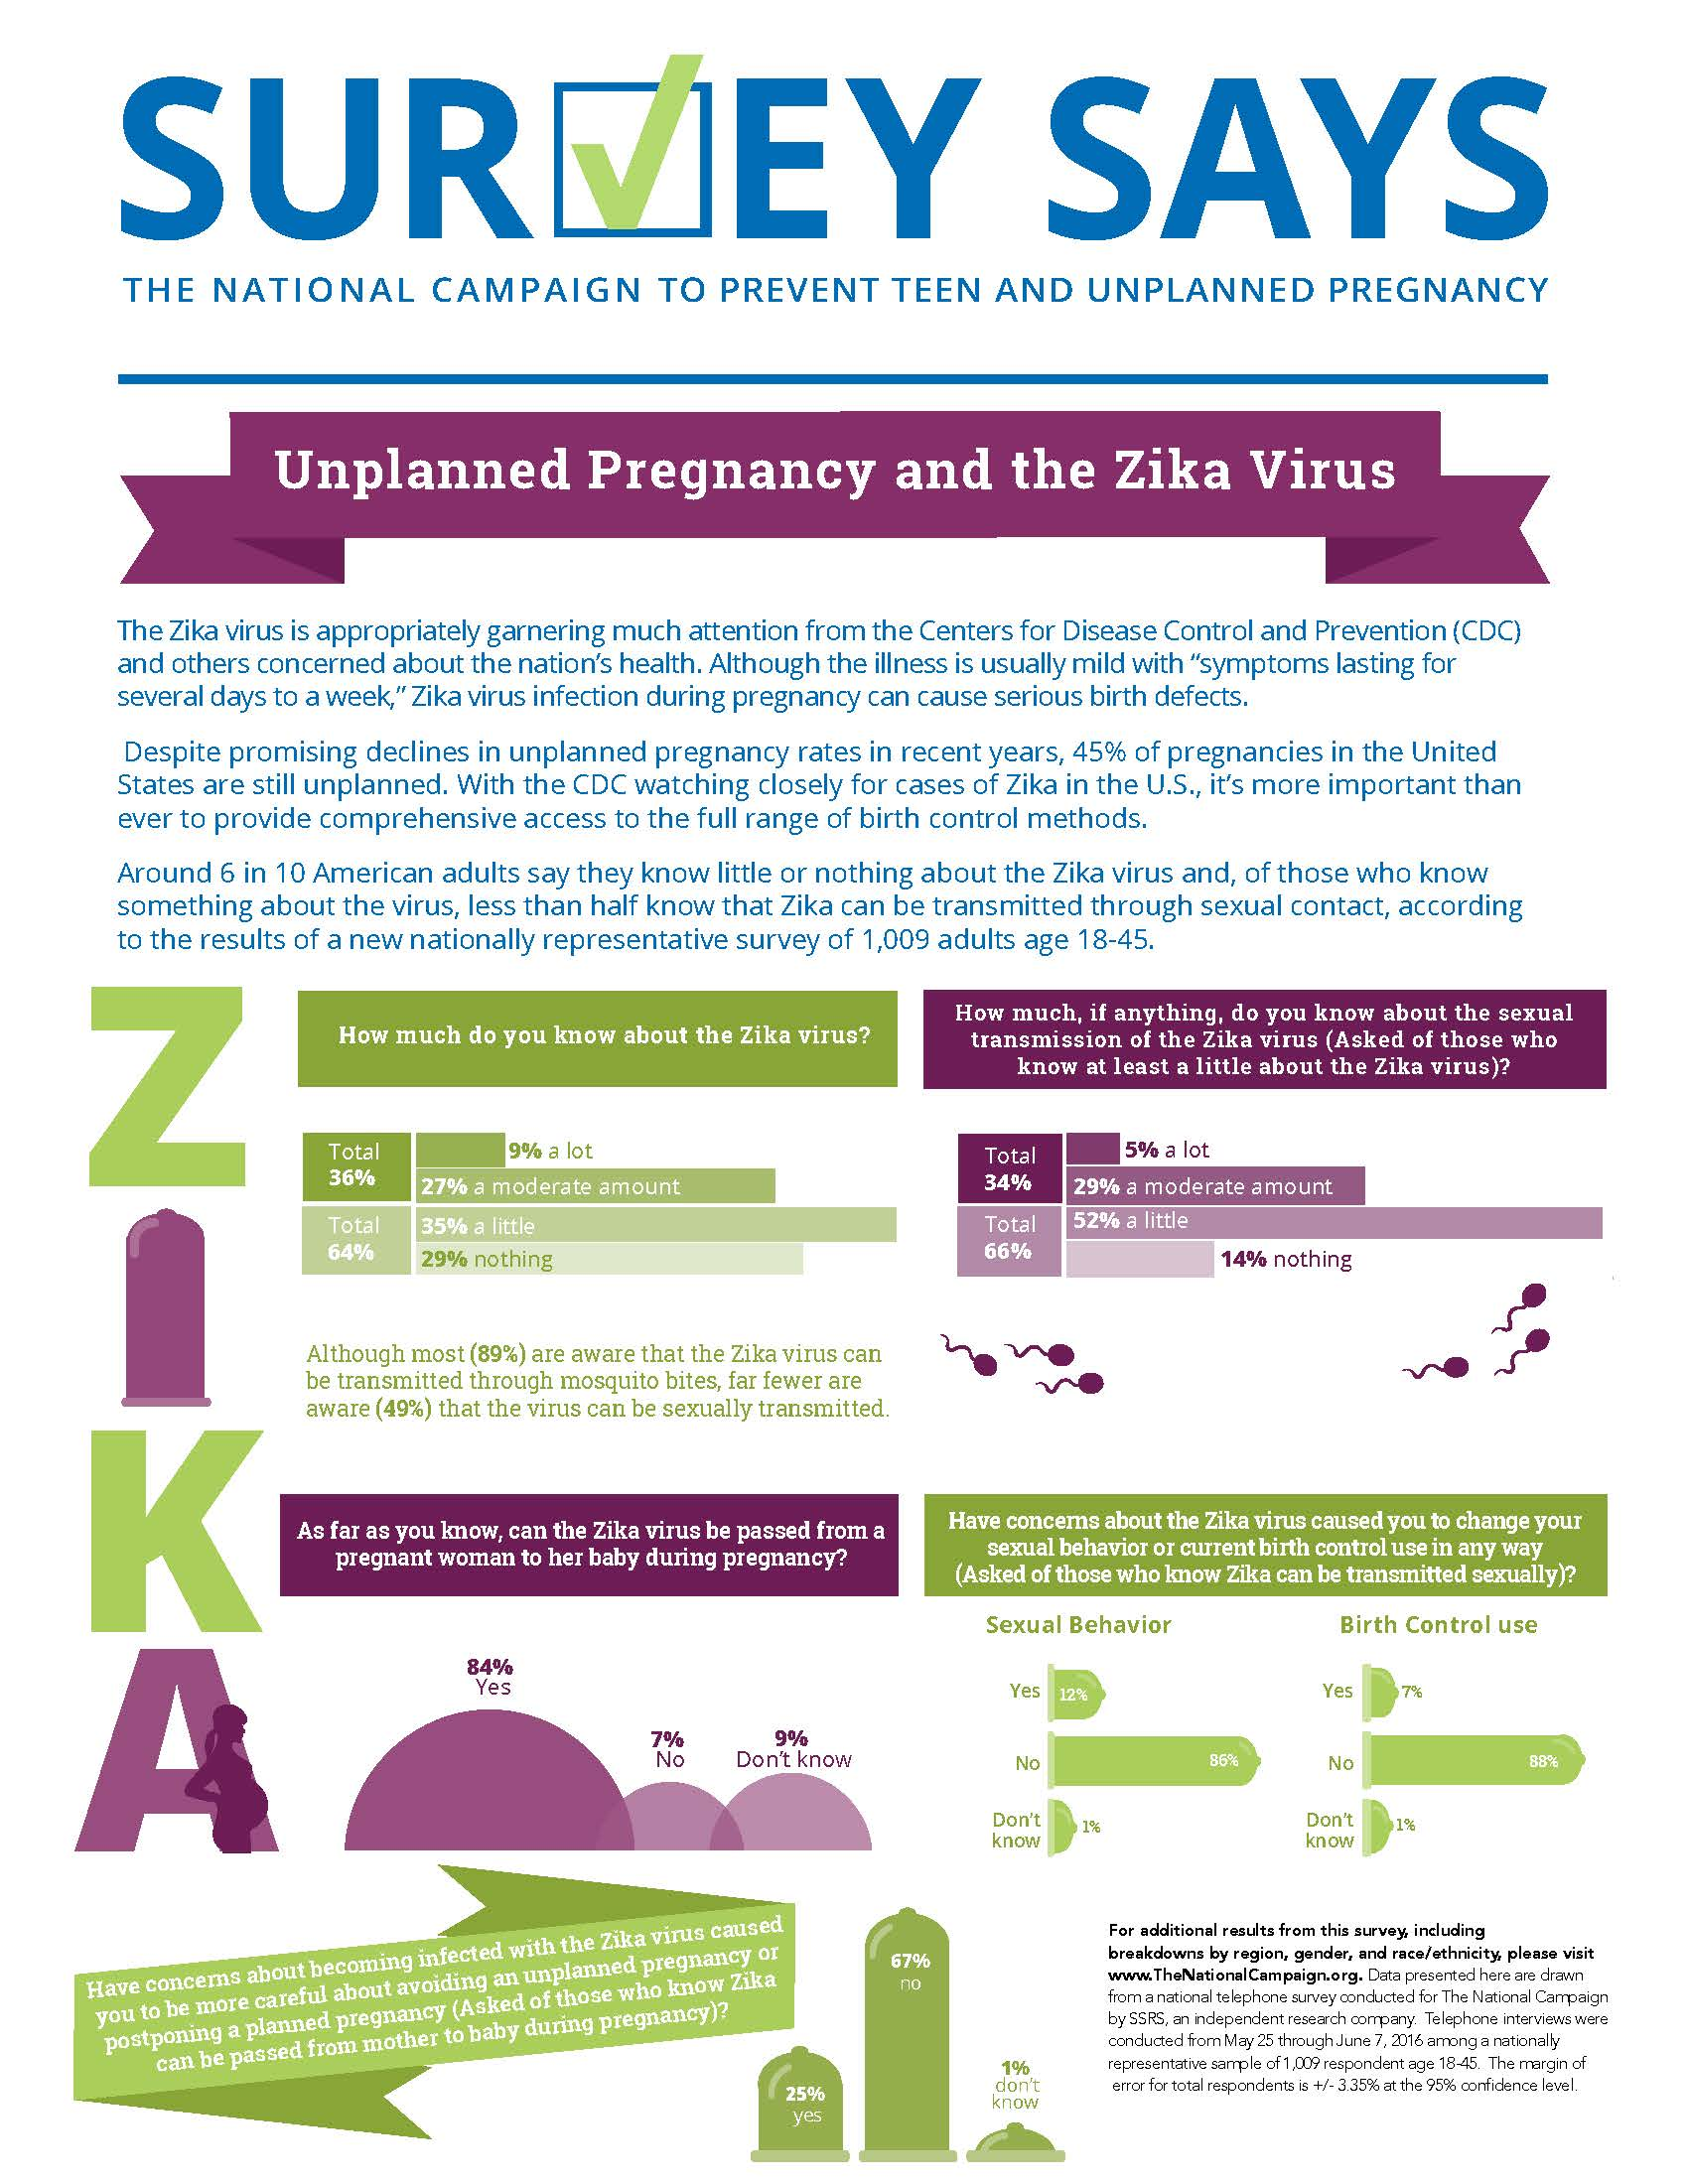 Survey Says: Unplanned Pregnancy and the Zika Virus (June 2016)